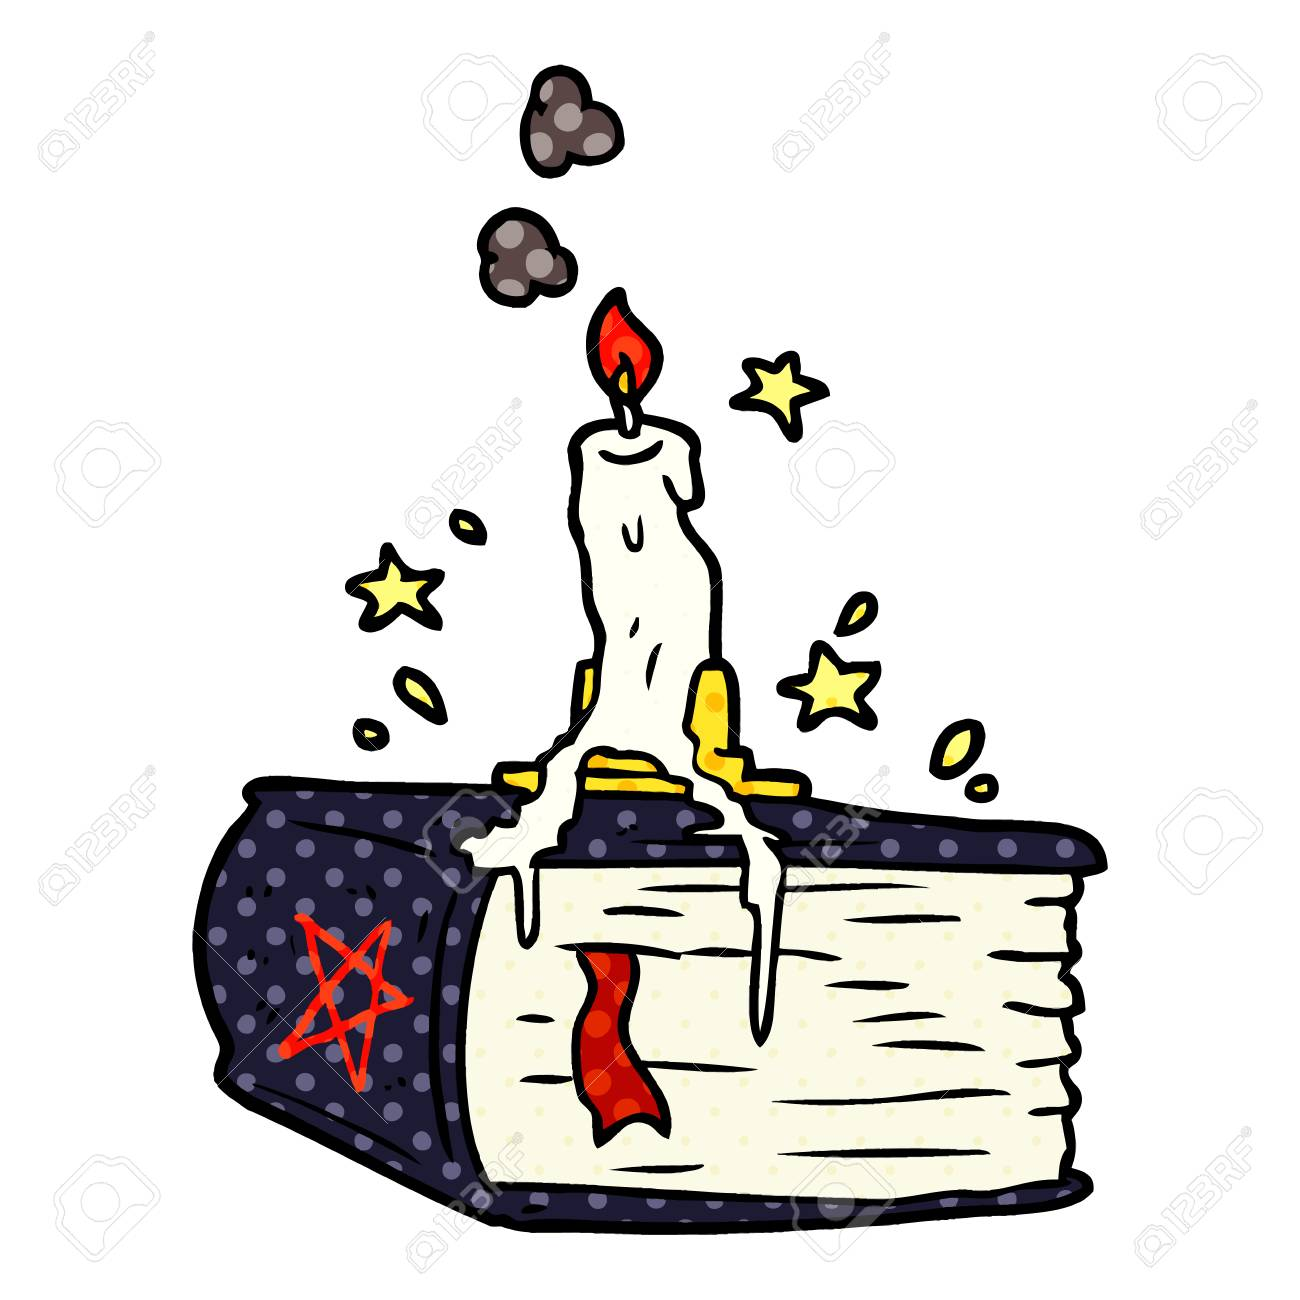 cartoon spooky spellbook with dribbling candle royalty free cliparts rh 123rf com Scary Halloween Graphics Zombie Clip Art